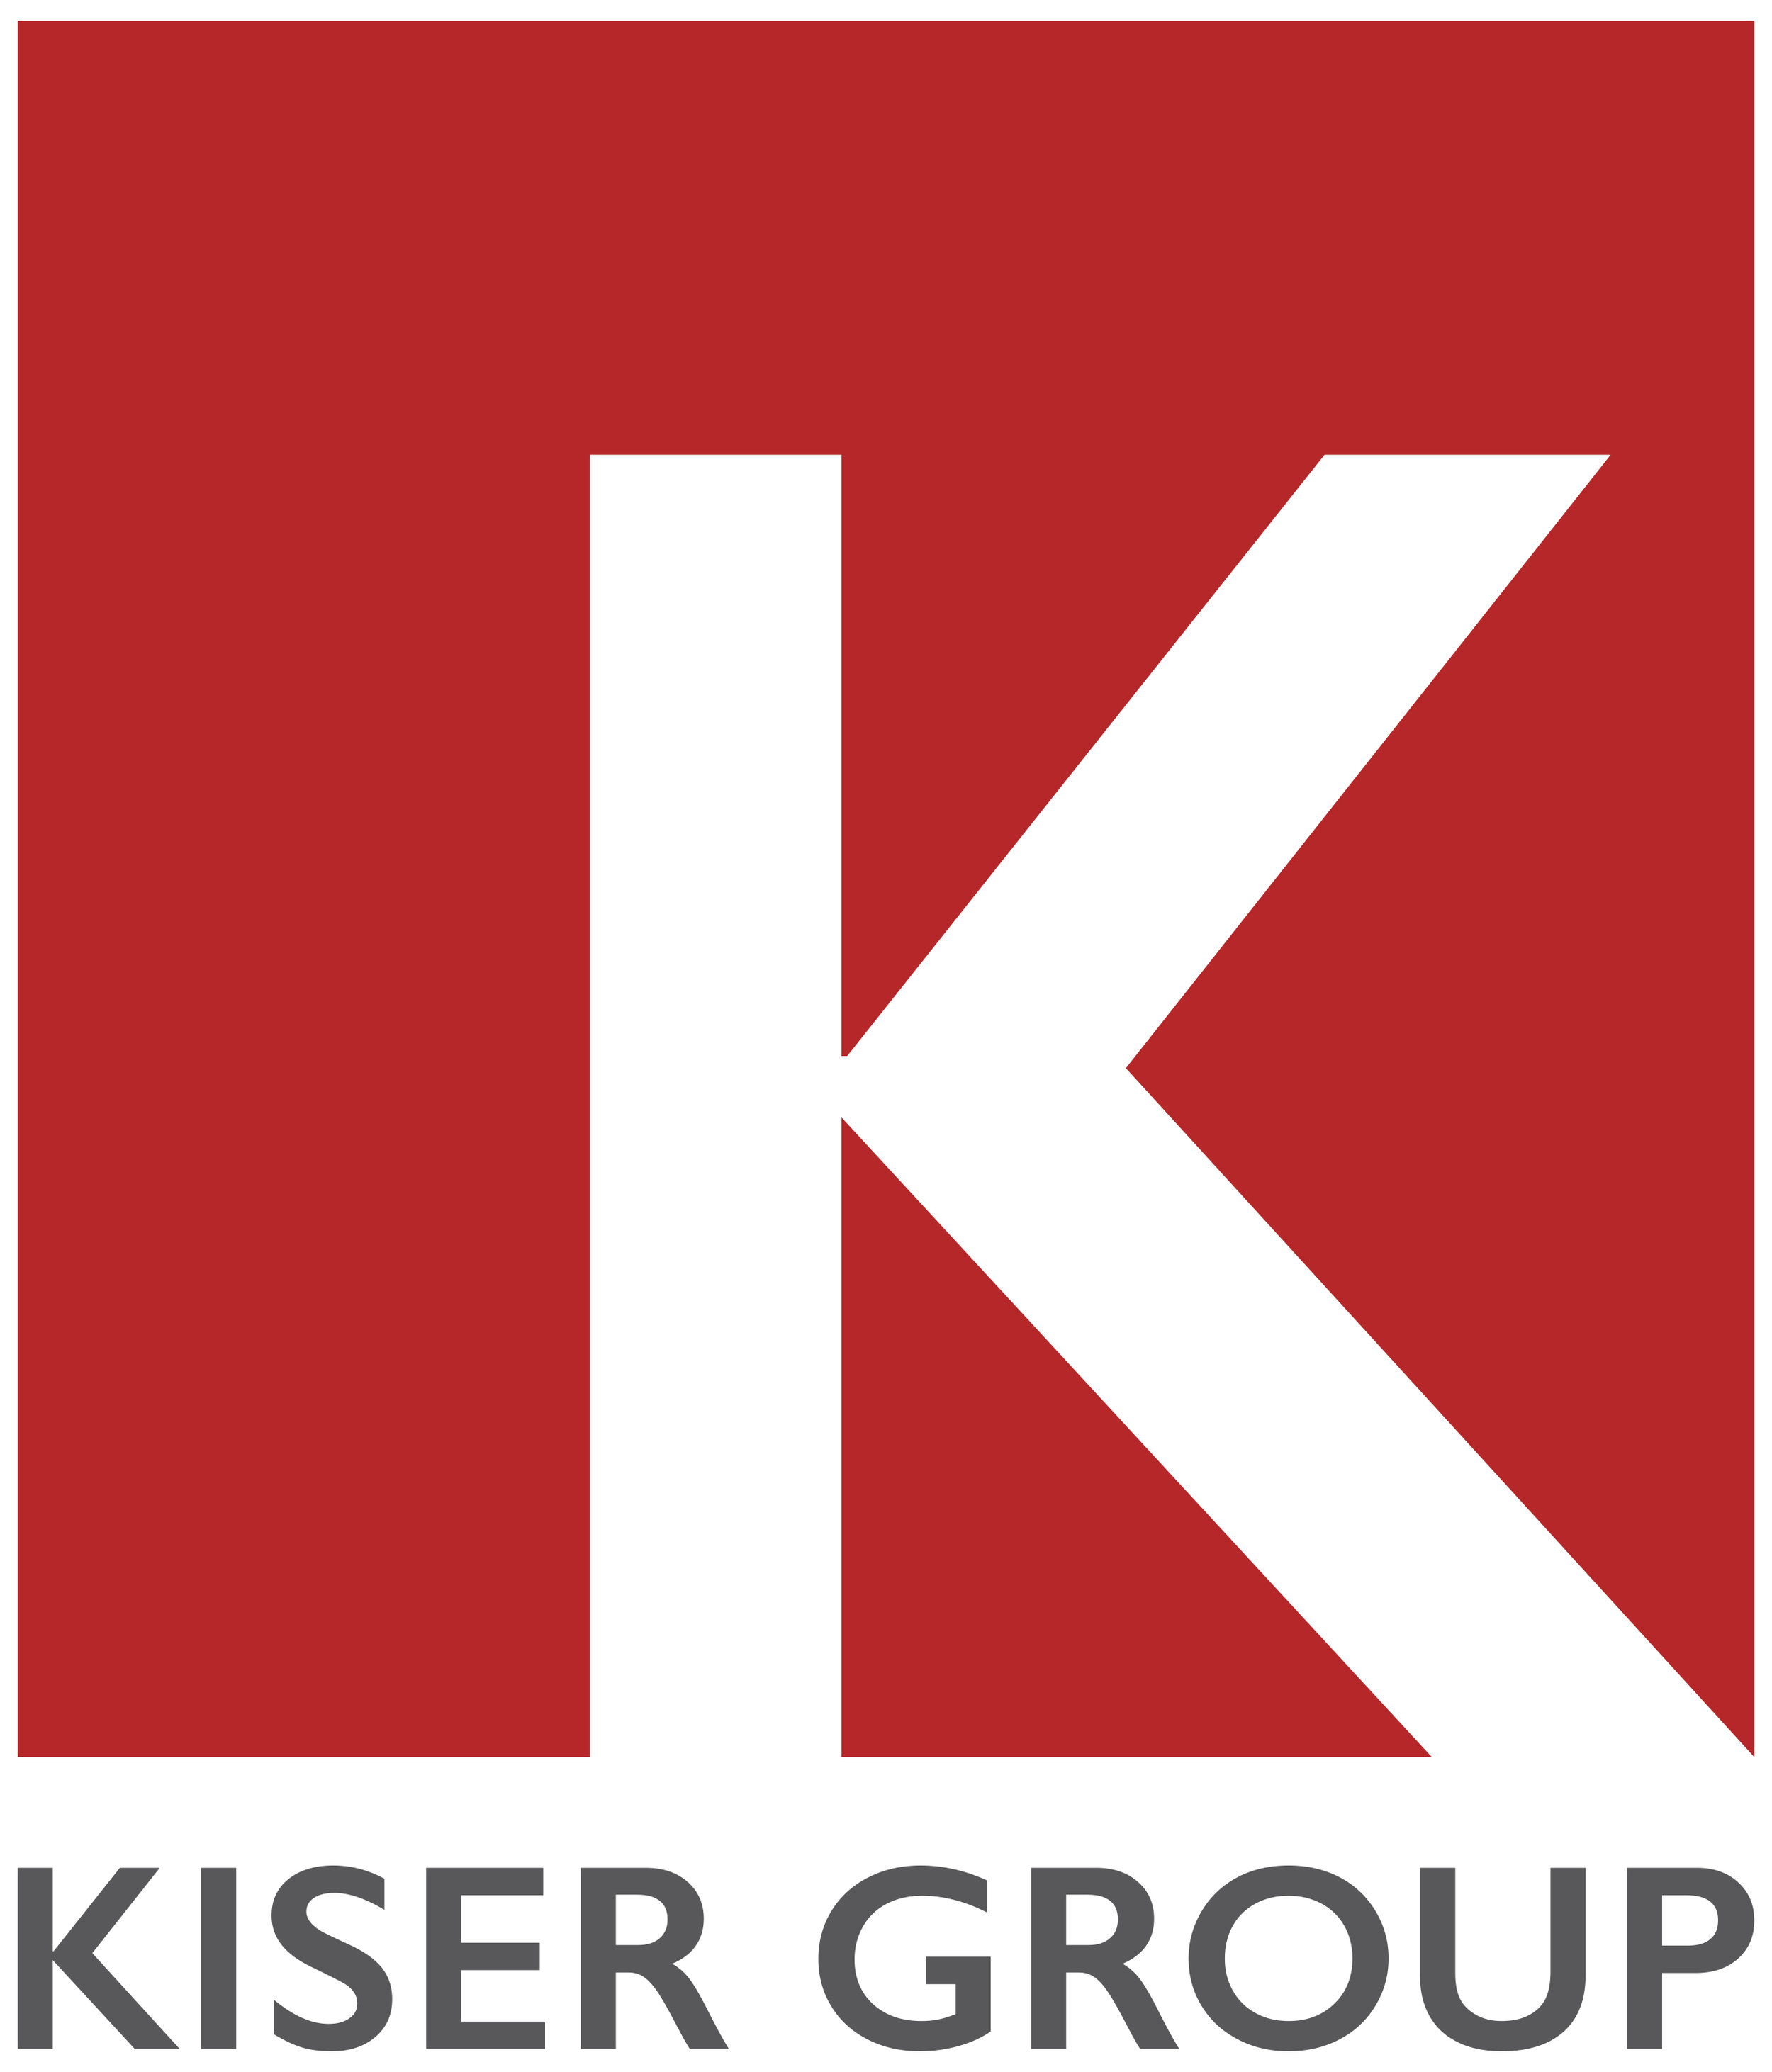 kisergroup_logo-large_digital.jpg